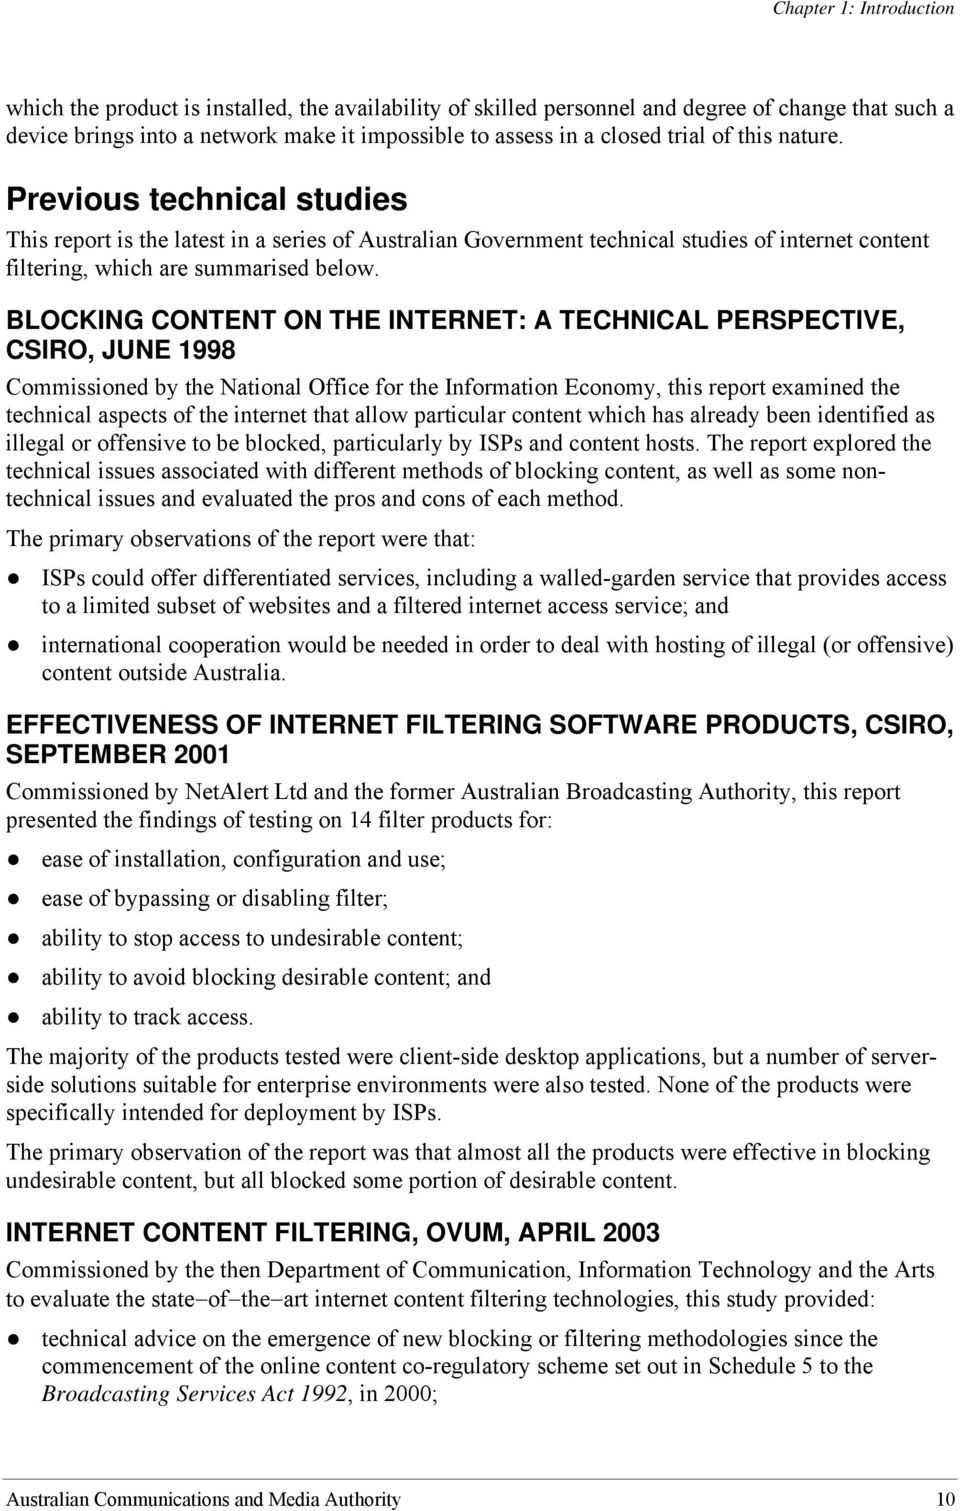 BLOCKING CONTENT ON THE INTERNET: A TECHNICAL PERSPECTIVE, CSIRO, JUNE 1998 Commissioned by the National Office for the Information Economy, this report examined the technical aspects of the internet